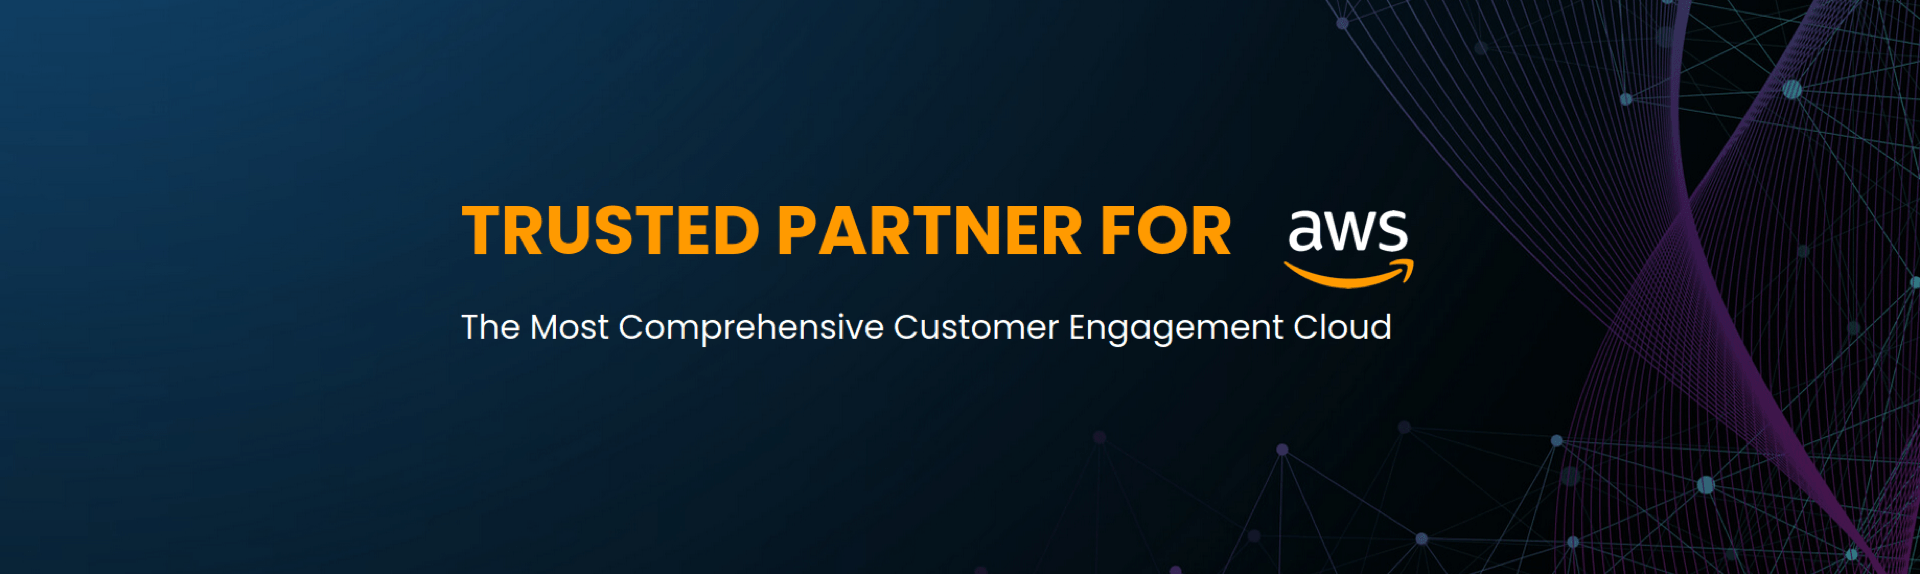 Trusted partner for aws